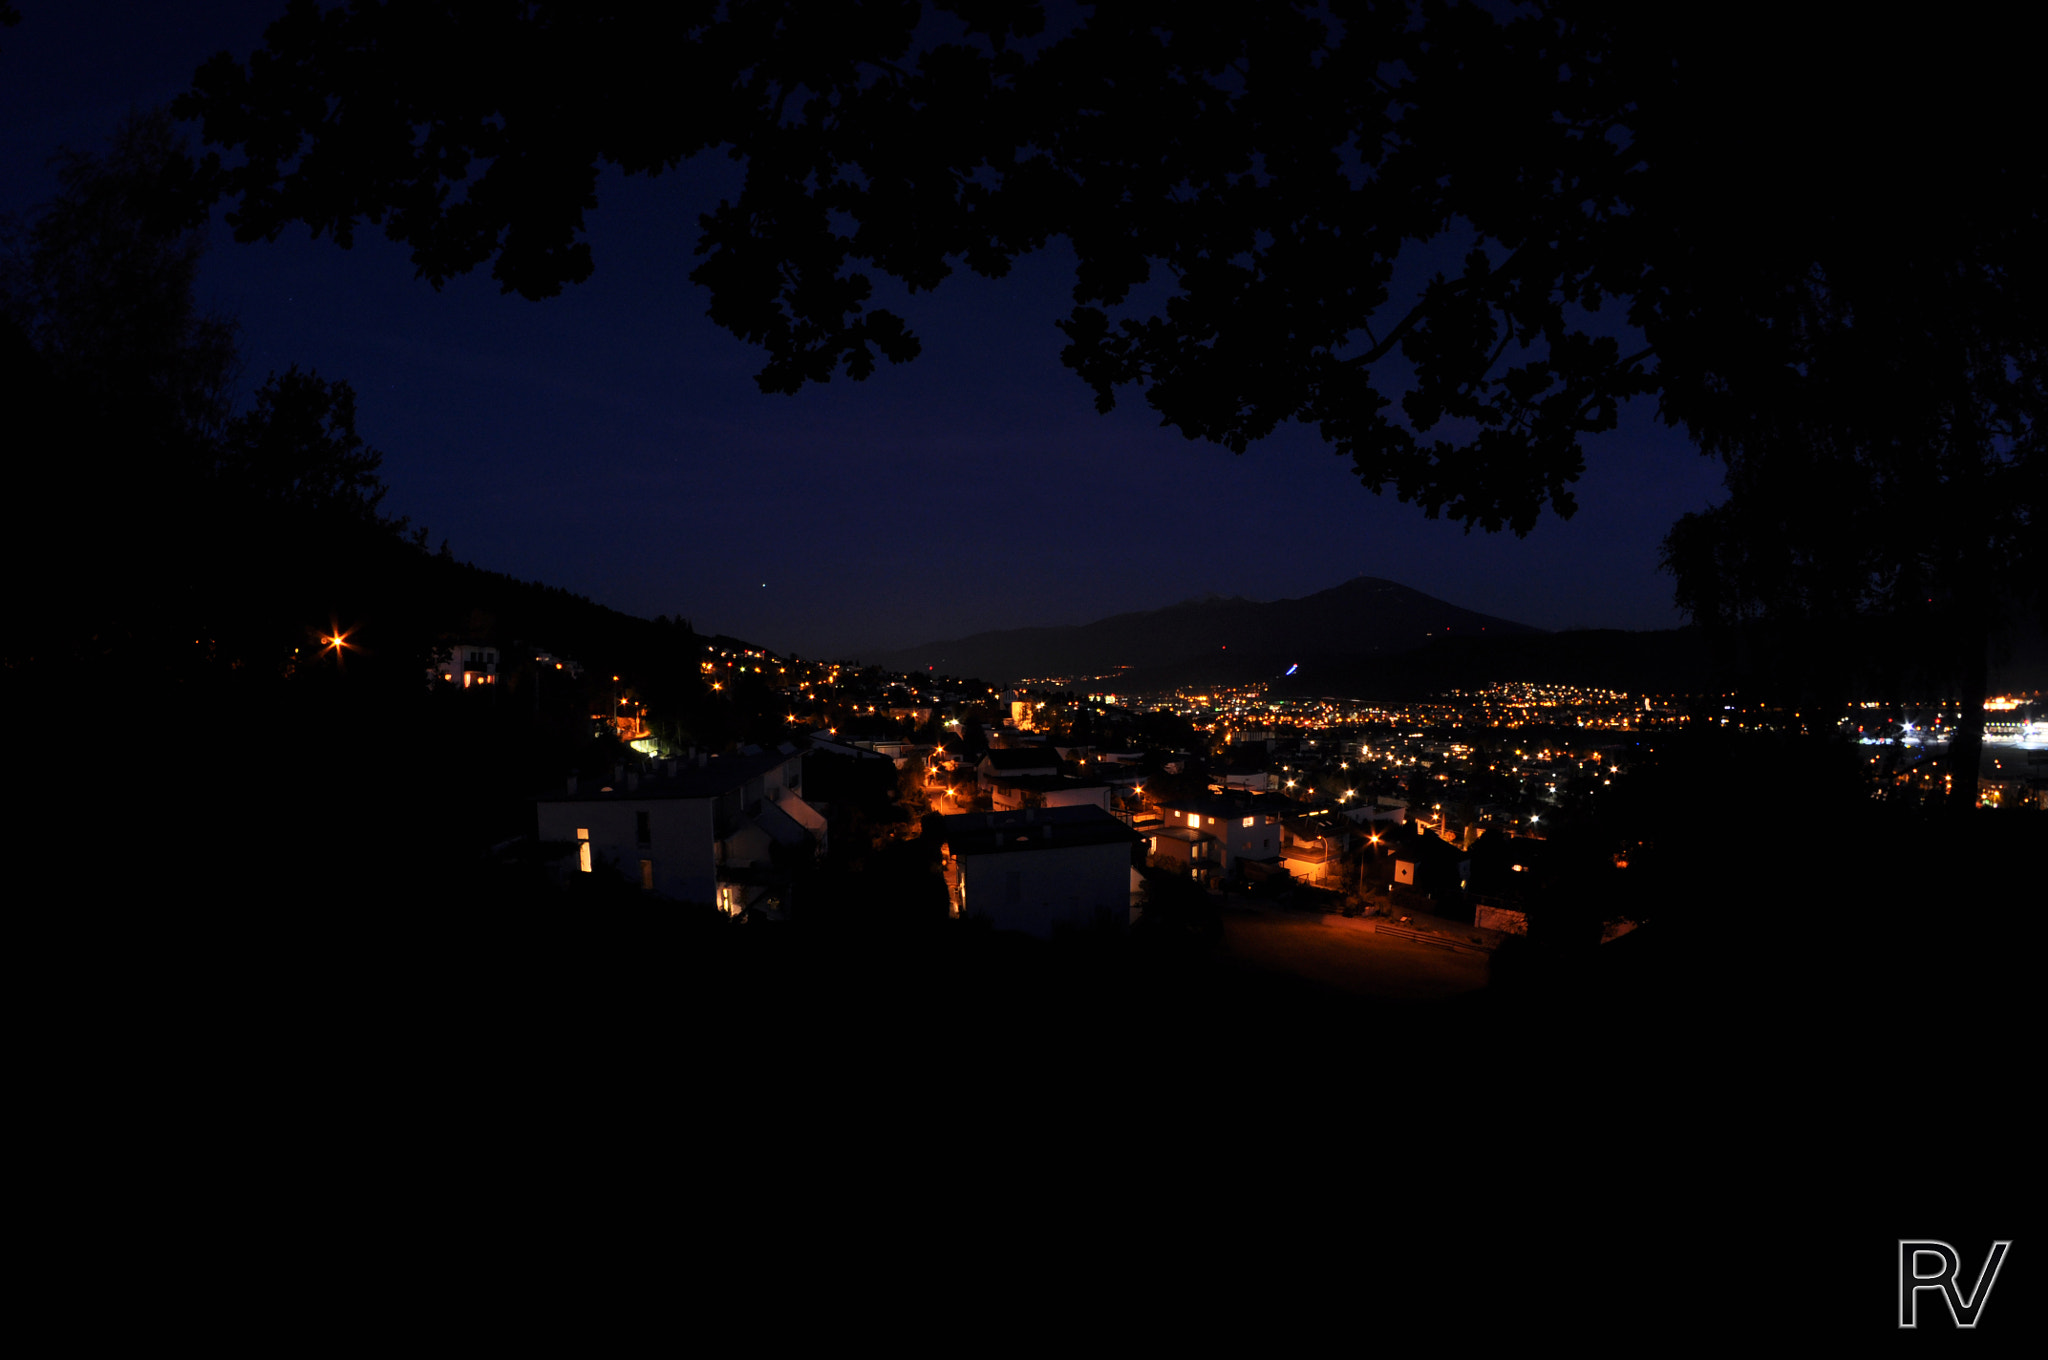 Photograph View from Galgenbühel by Robert V on 500px